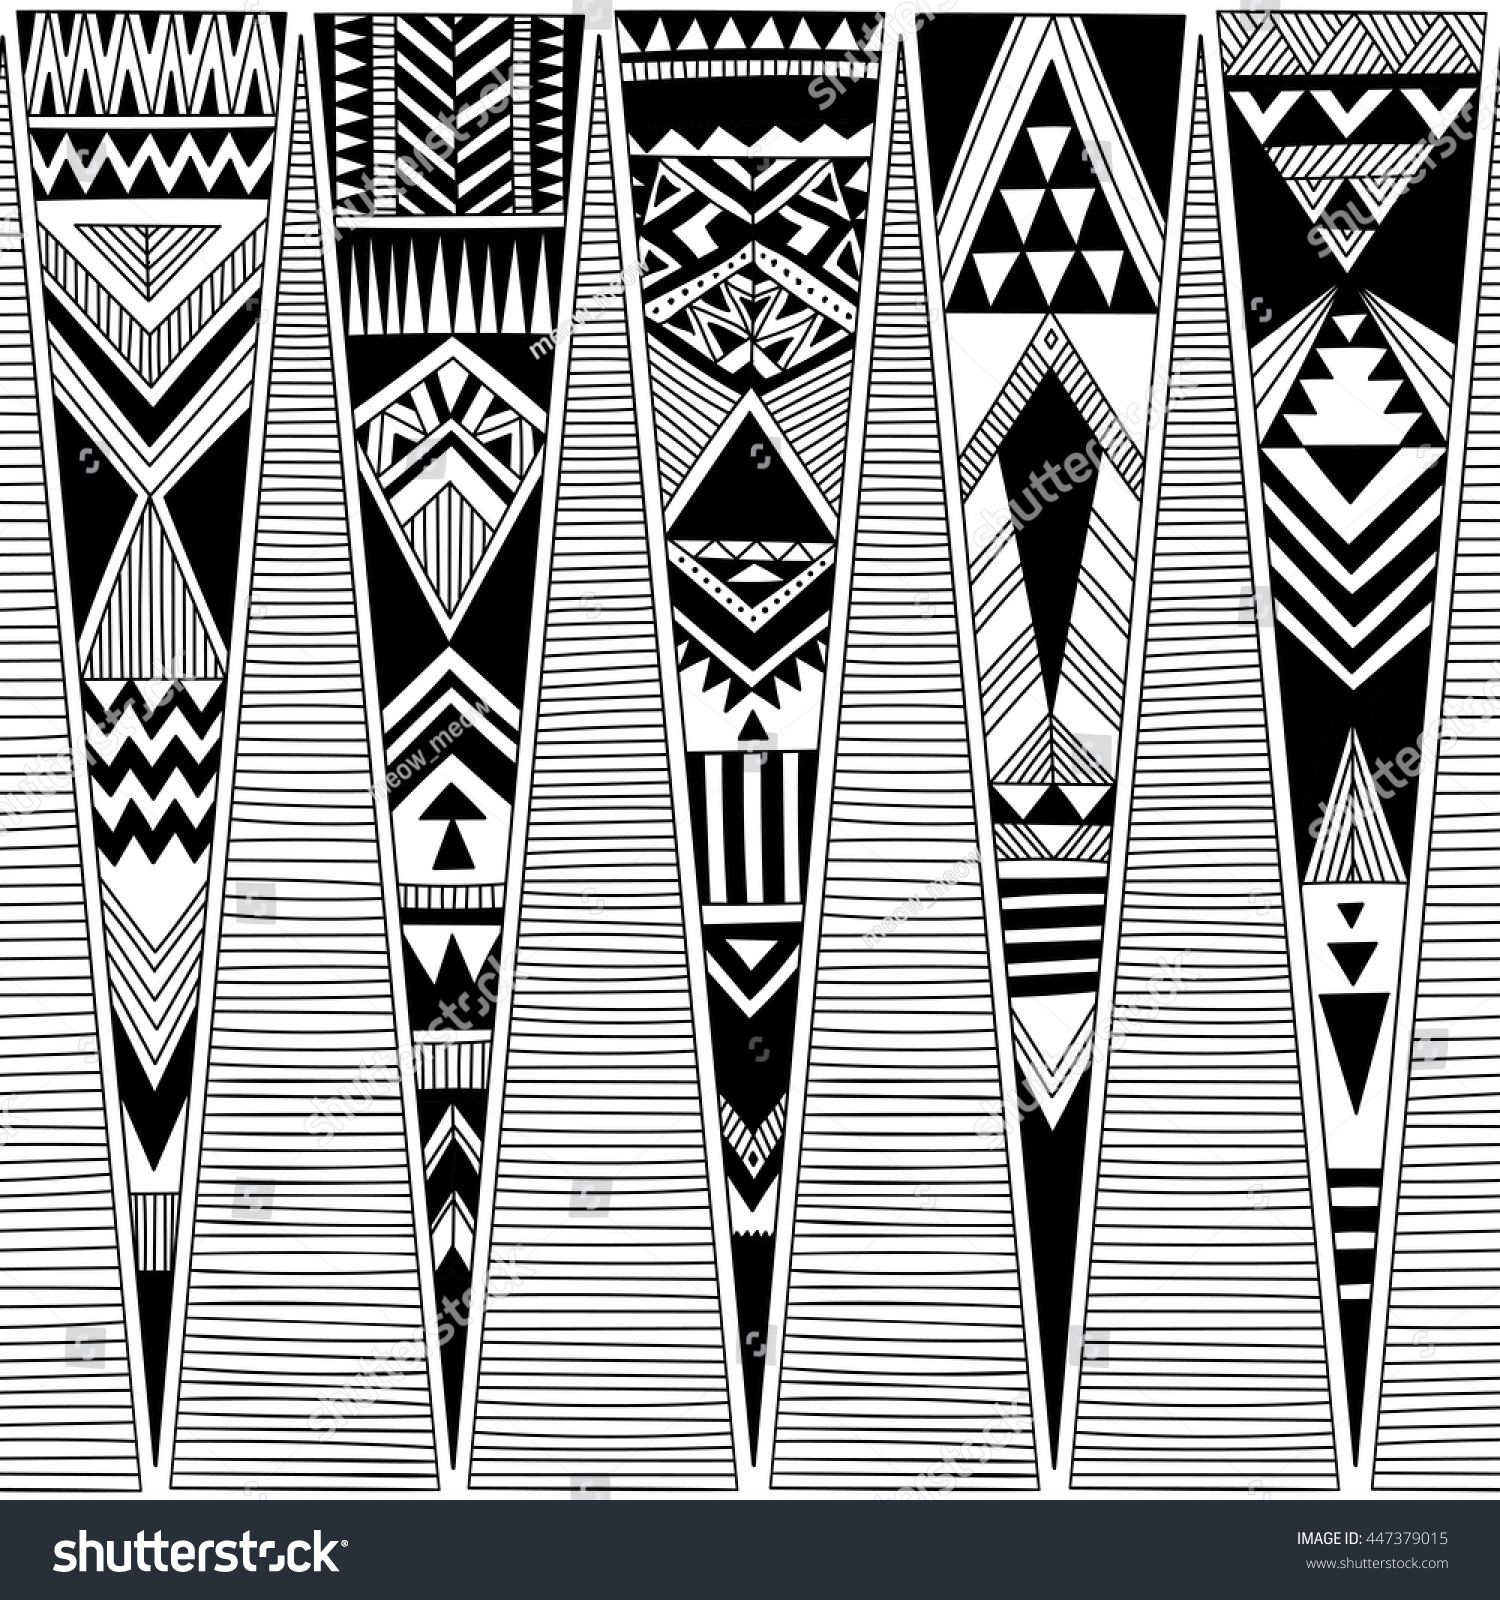 Black And White Tribal Navajo Vector Seamless Pattern With Doodle Triangles Aztec Abstract Geometric Art Print Ethnic Hipster Background